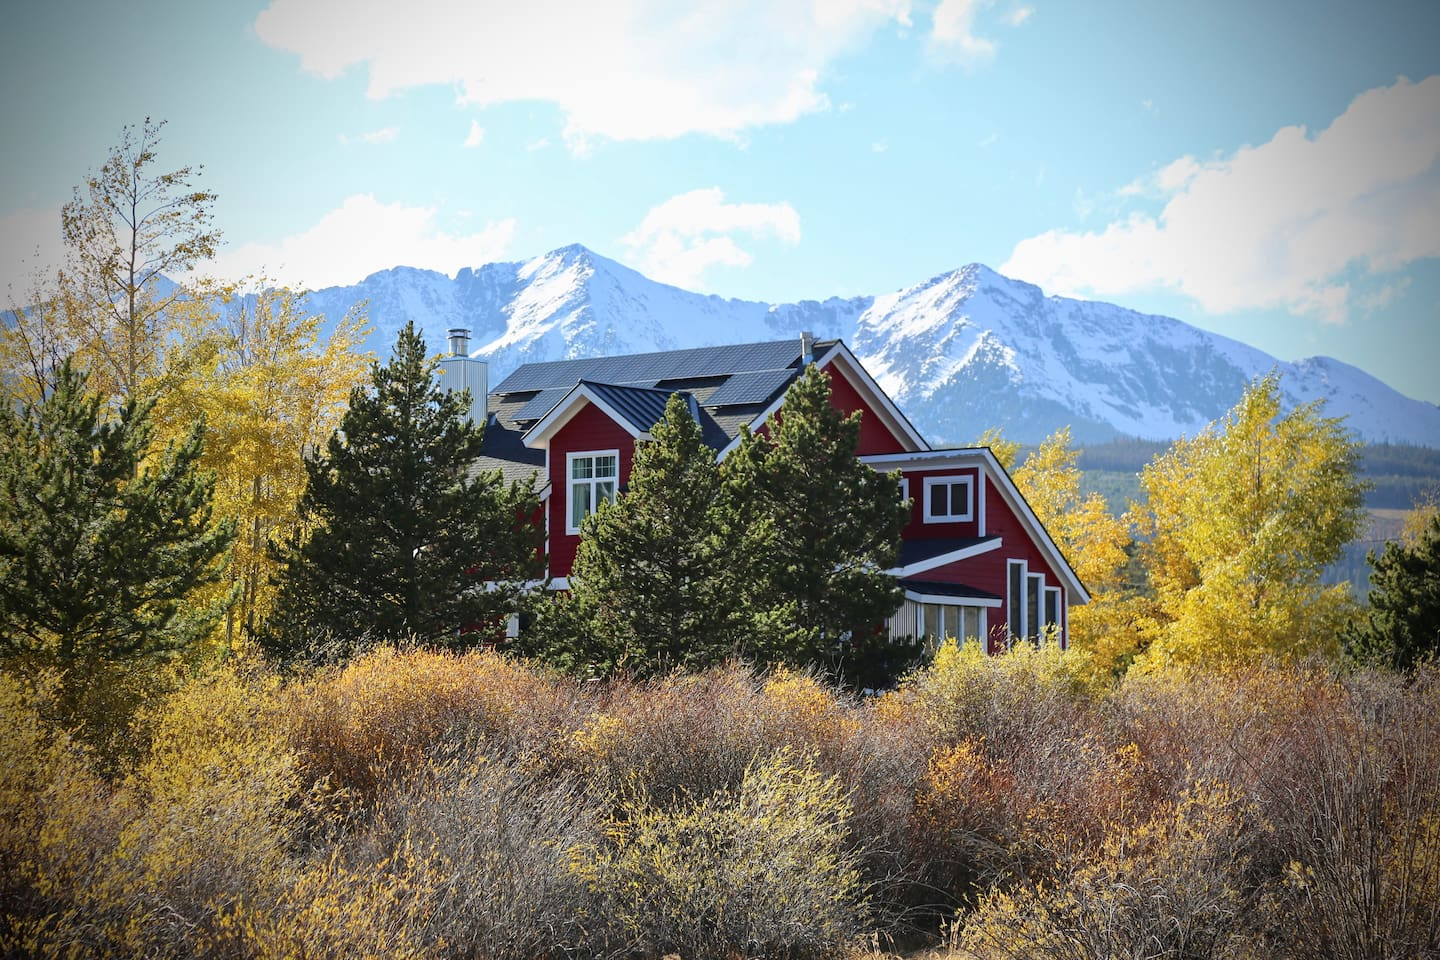 Our Red Barn in the mountains.